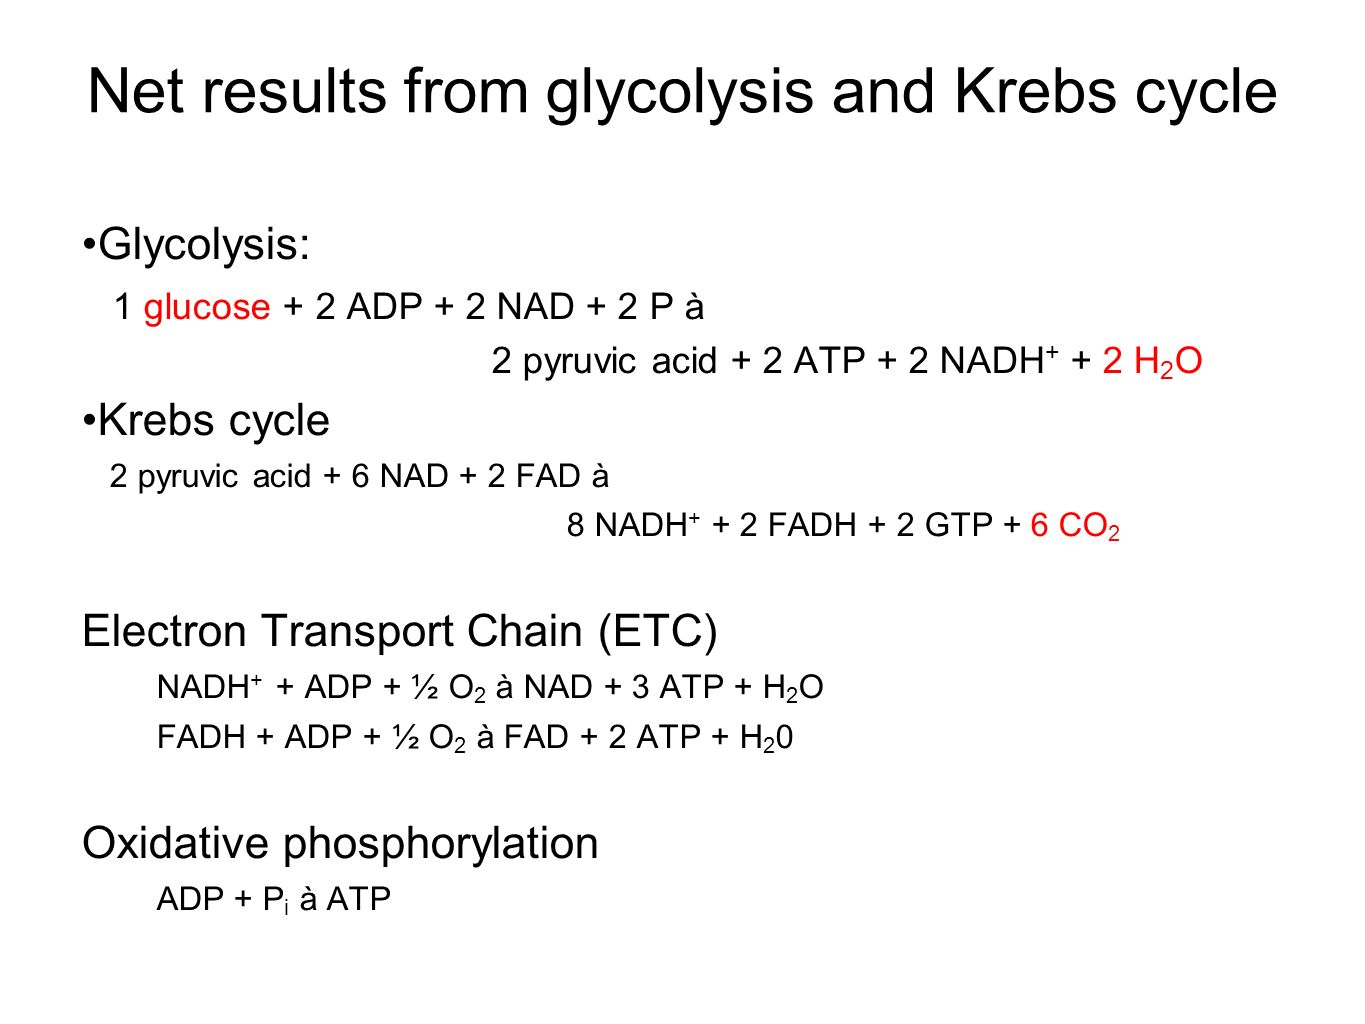 Net results from glycolysis and Krebs cycle Glycolysis: 1 glucose + 2 ADP + 2 NAD + 2 P à 2 pyruvic acid + 2 ATP + 2 NADH + + 2 H 2 O Krebs cycle 2 pyruvic acid + 6 NAD + 2 FAD à 8 NADH + + 2 FADH + 2 GTP + 6 CO 2 Electron Transport Chain (ETC) NADH + + ADP + ½ O 2 à NAD + 3 ATP + H 2 O FADH + ADP + ½ O 2 à FAD + 2 ATP + H 2 0 Oxidative phosphorylation ADP + P i à ATP